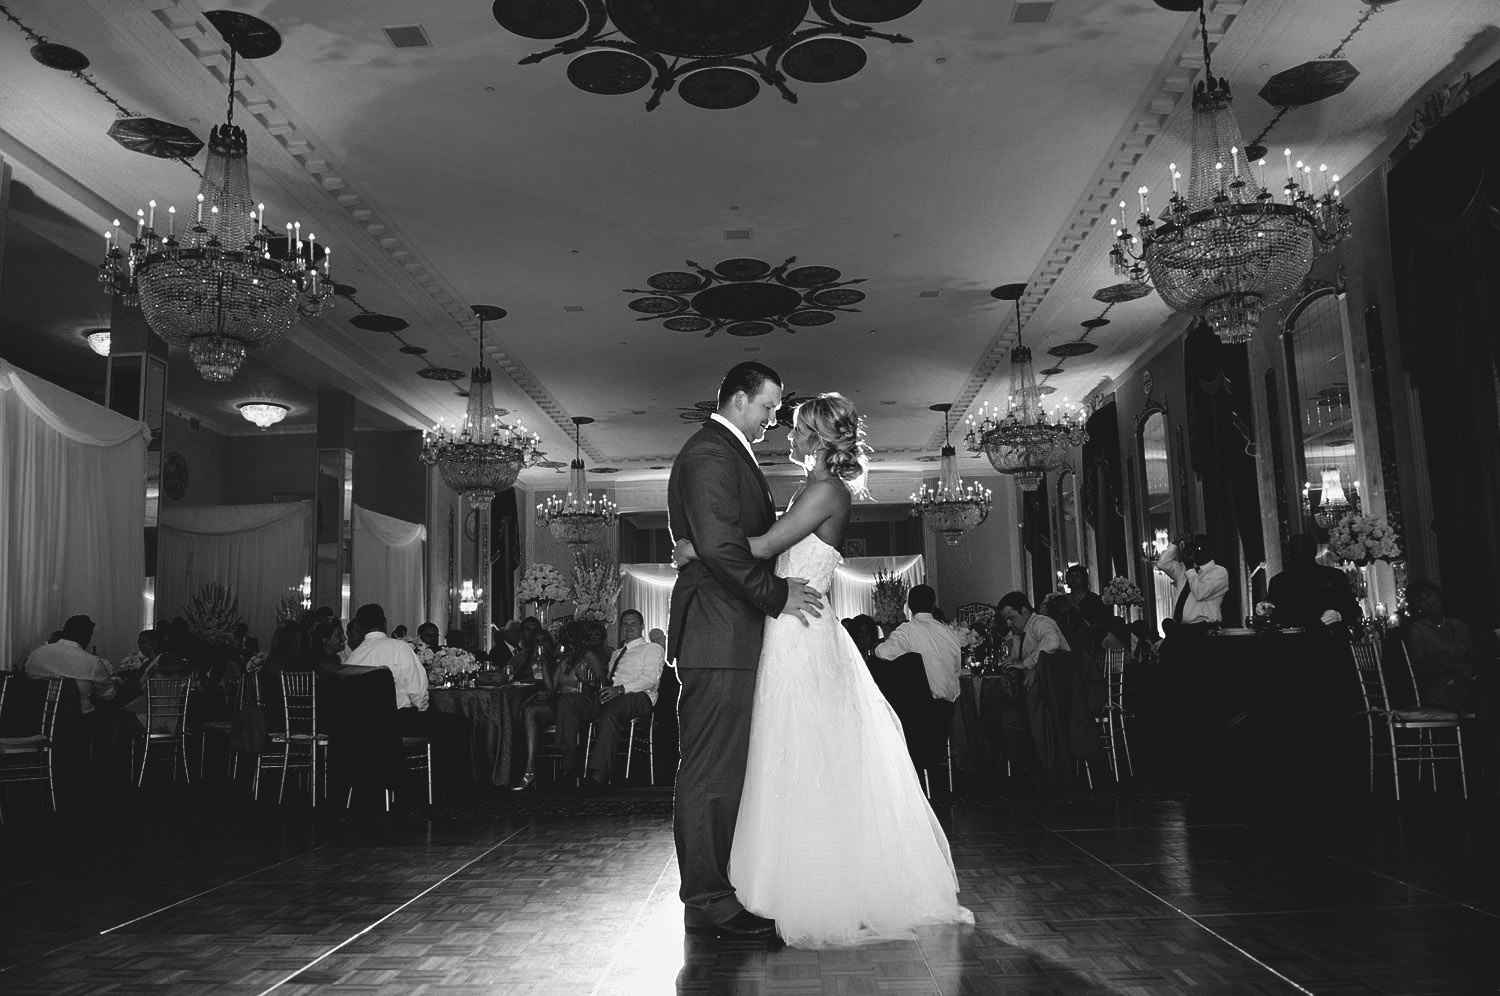 PRO FOOTBALL PLAYER BRYAN BULAGA SHARES A FIRST DANCE WITH HIS WIFE WHILE LEXIA FRANK, TOP DESTINATION WEDDING PHOTOGRAPHER PHOTOGRAPHS IN FILM AT THE HILTON CITY CENTER IN DOWNTOWN MILWAUKEE WEDDING